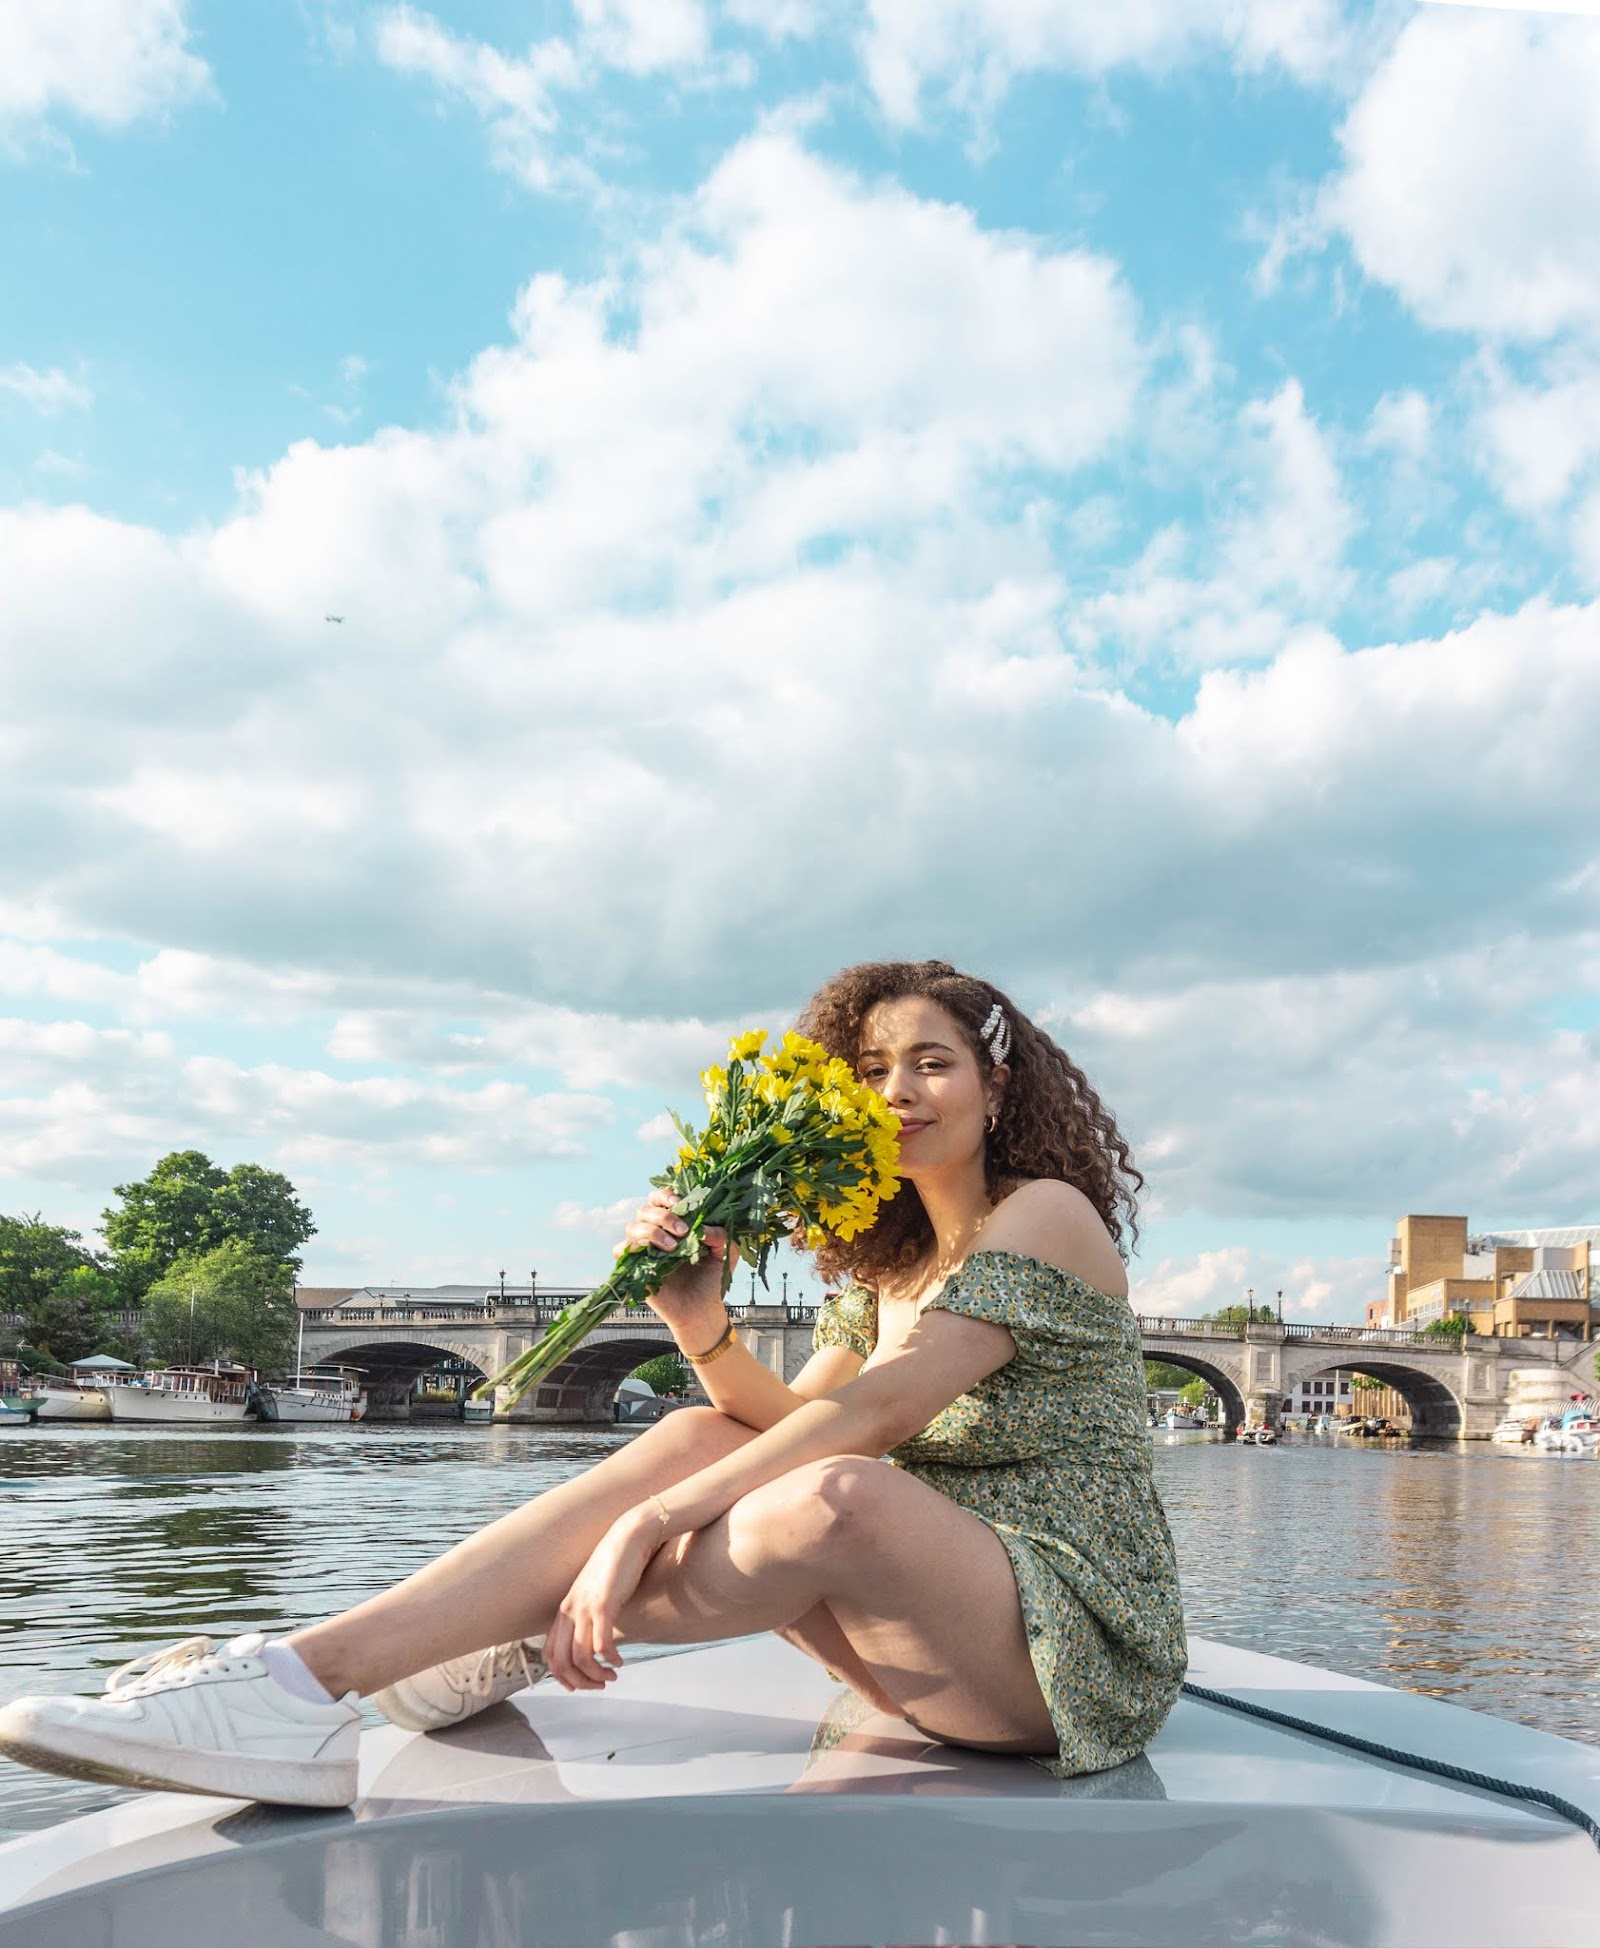 Self-Drive Boating with Go Boat London